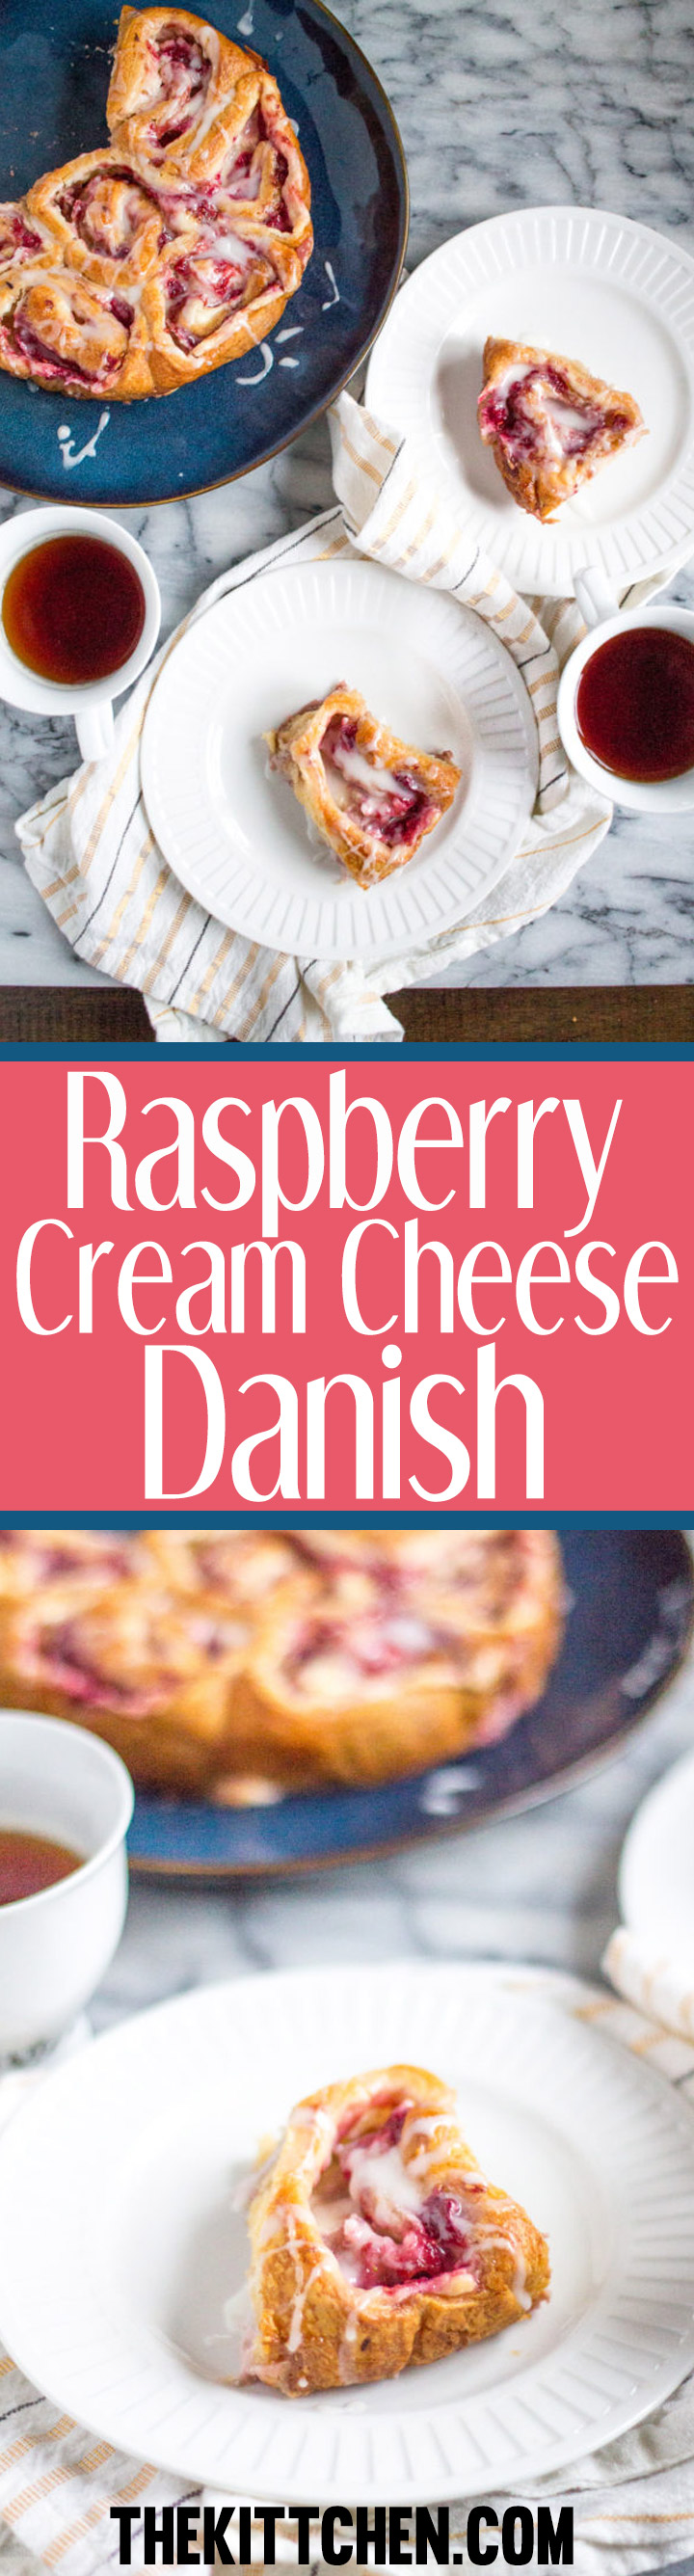 This Raspberry Cream Cheese Danish is an easy to prepare breakfast treat that takes just 10 minutes of active preparation time. It is a weekend breakfast your family will love.